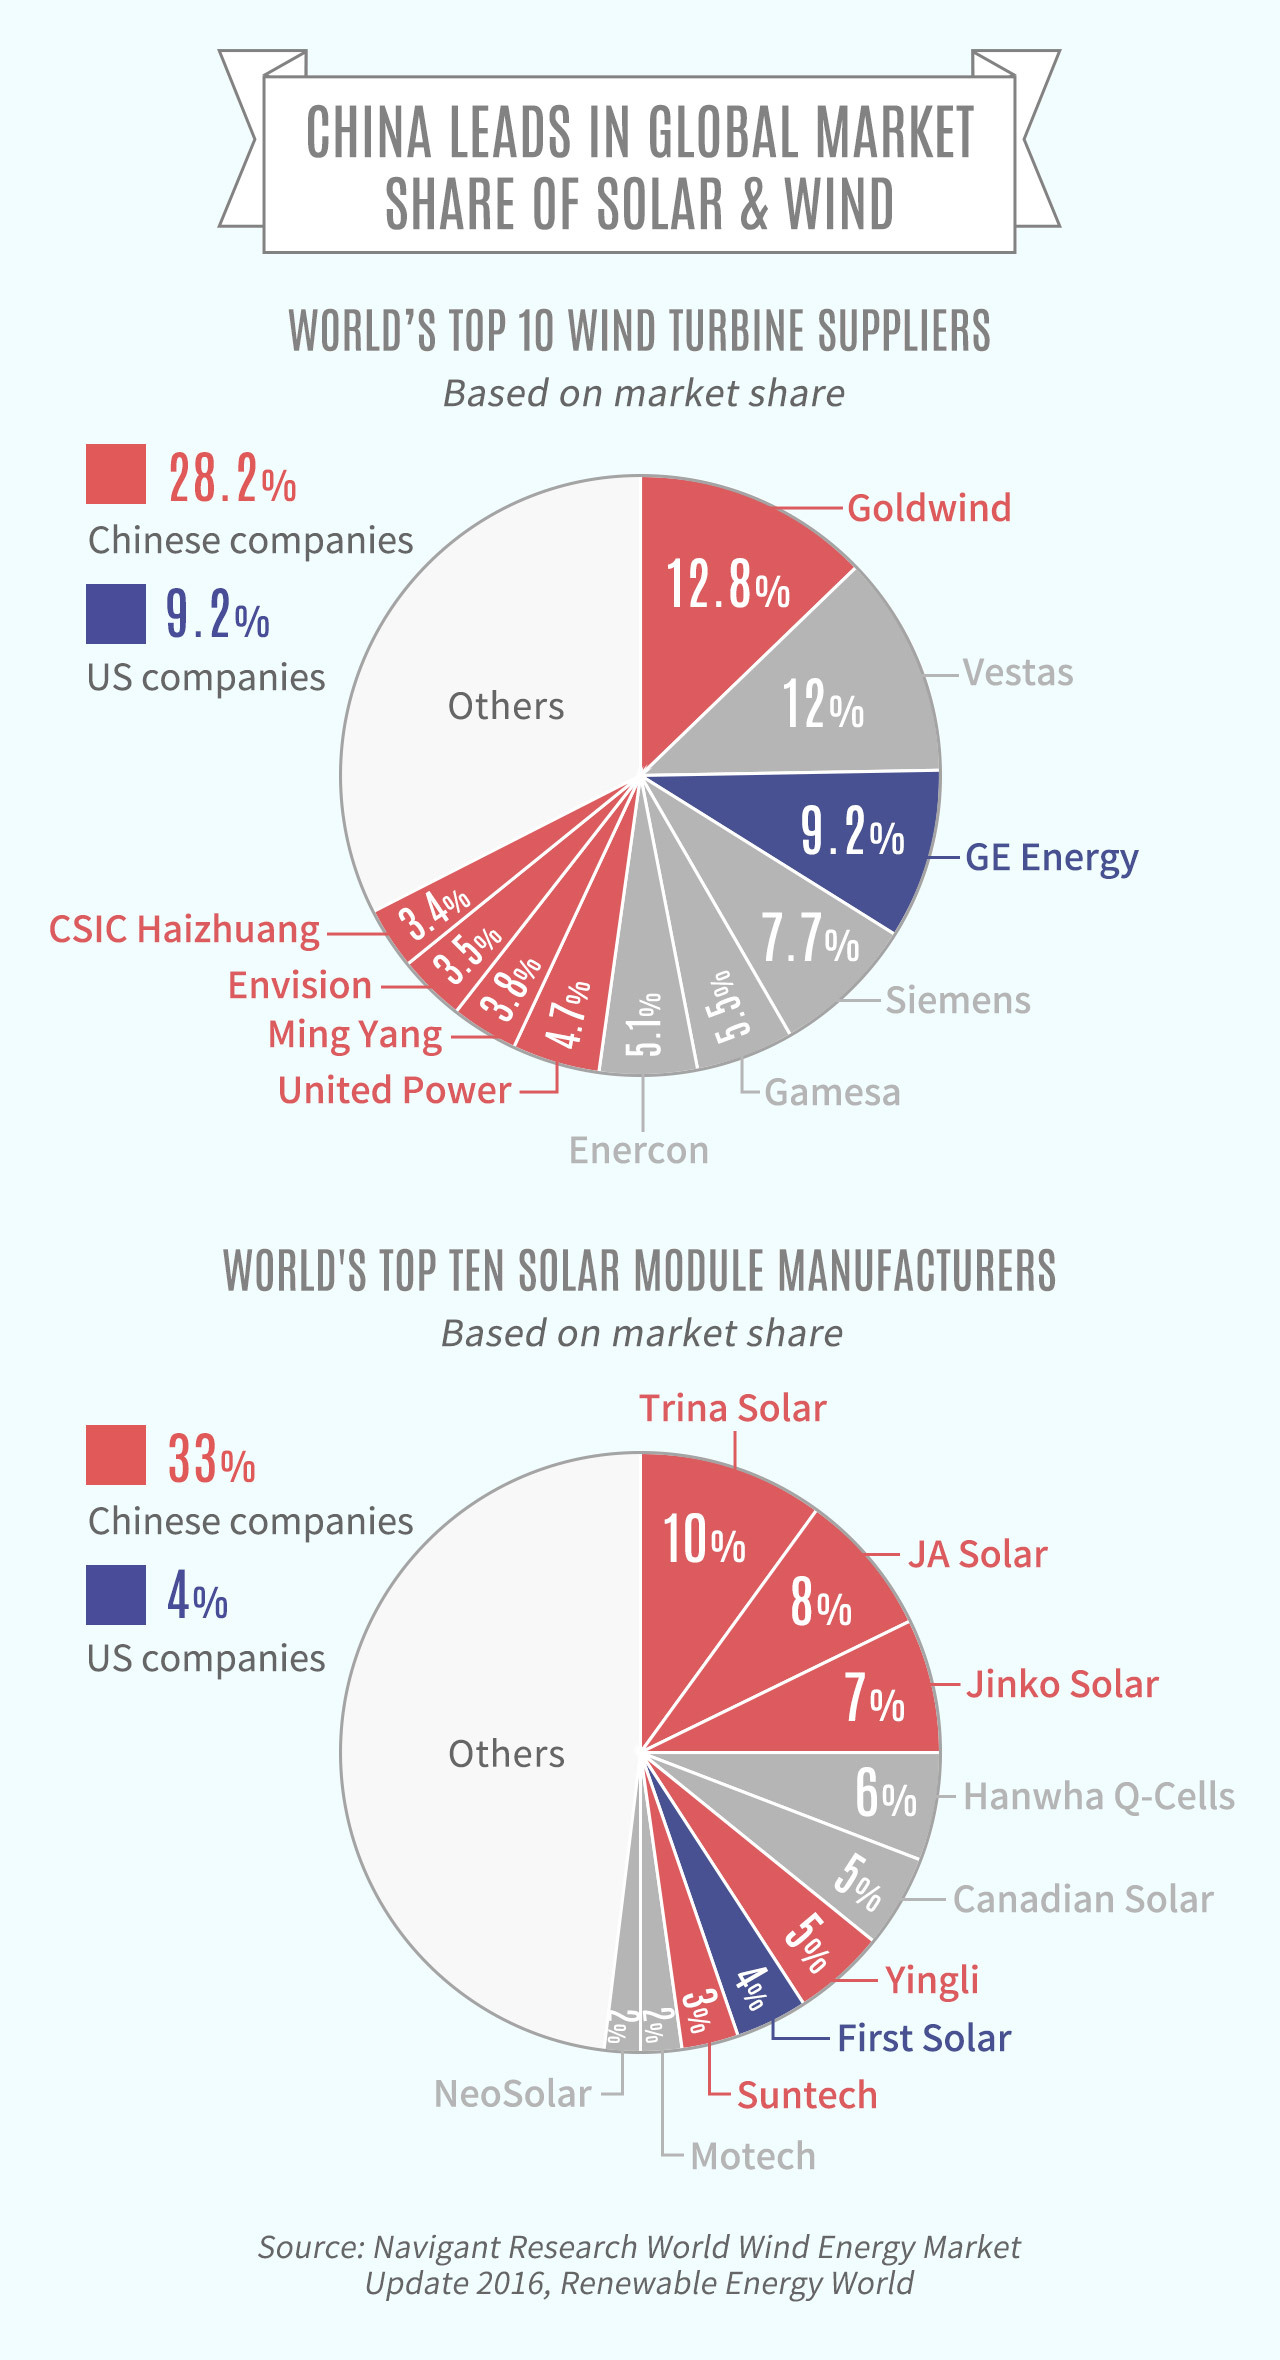 China leads in global market share of solar and wind